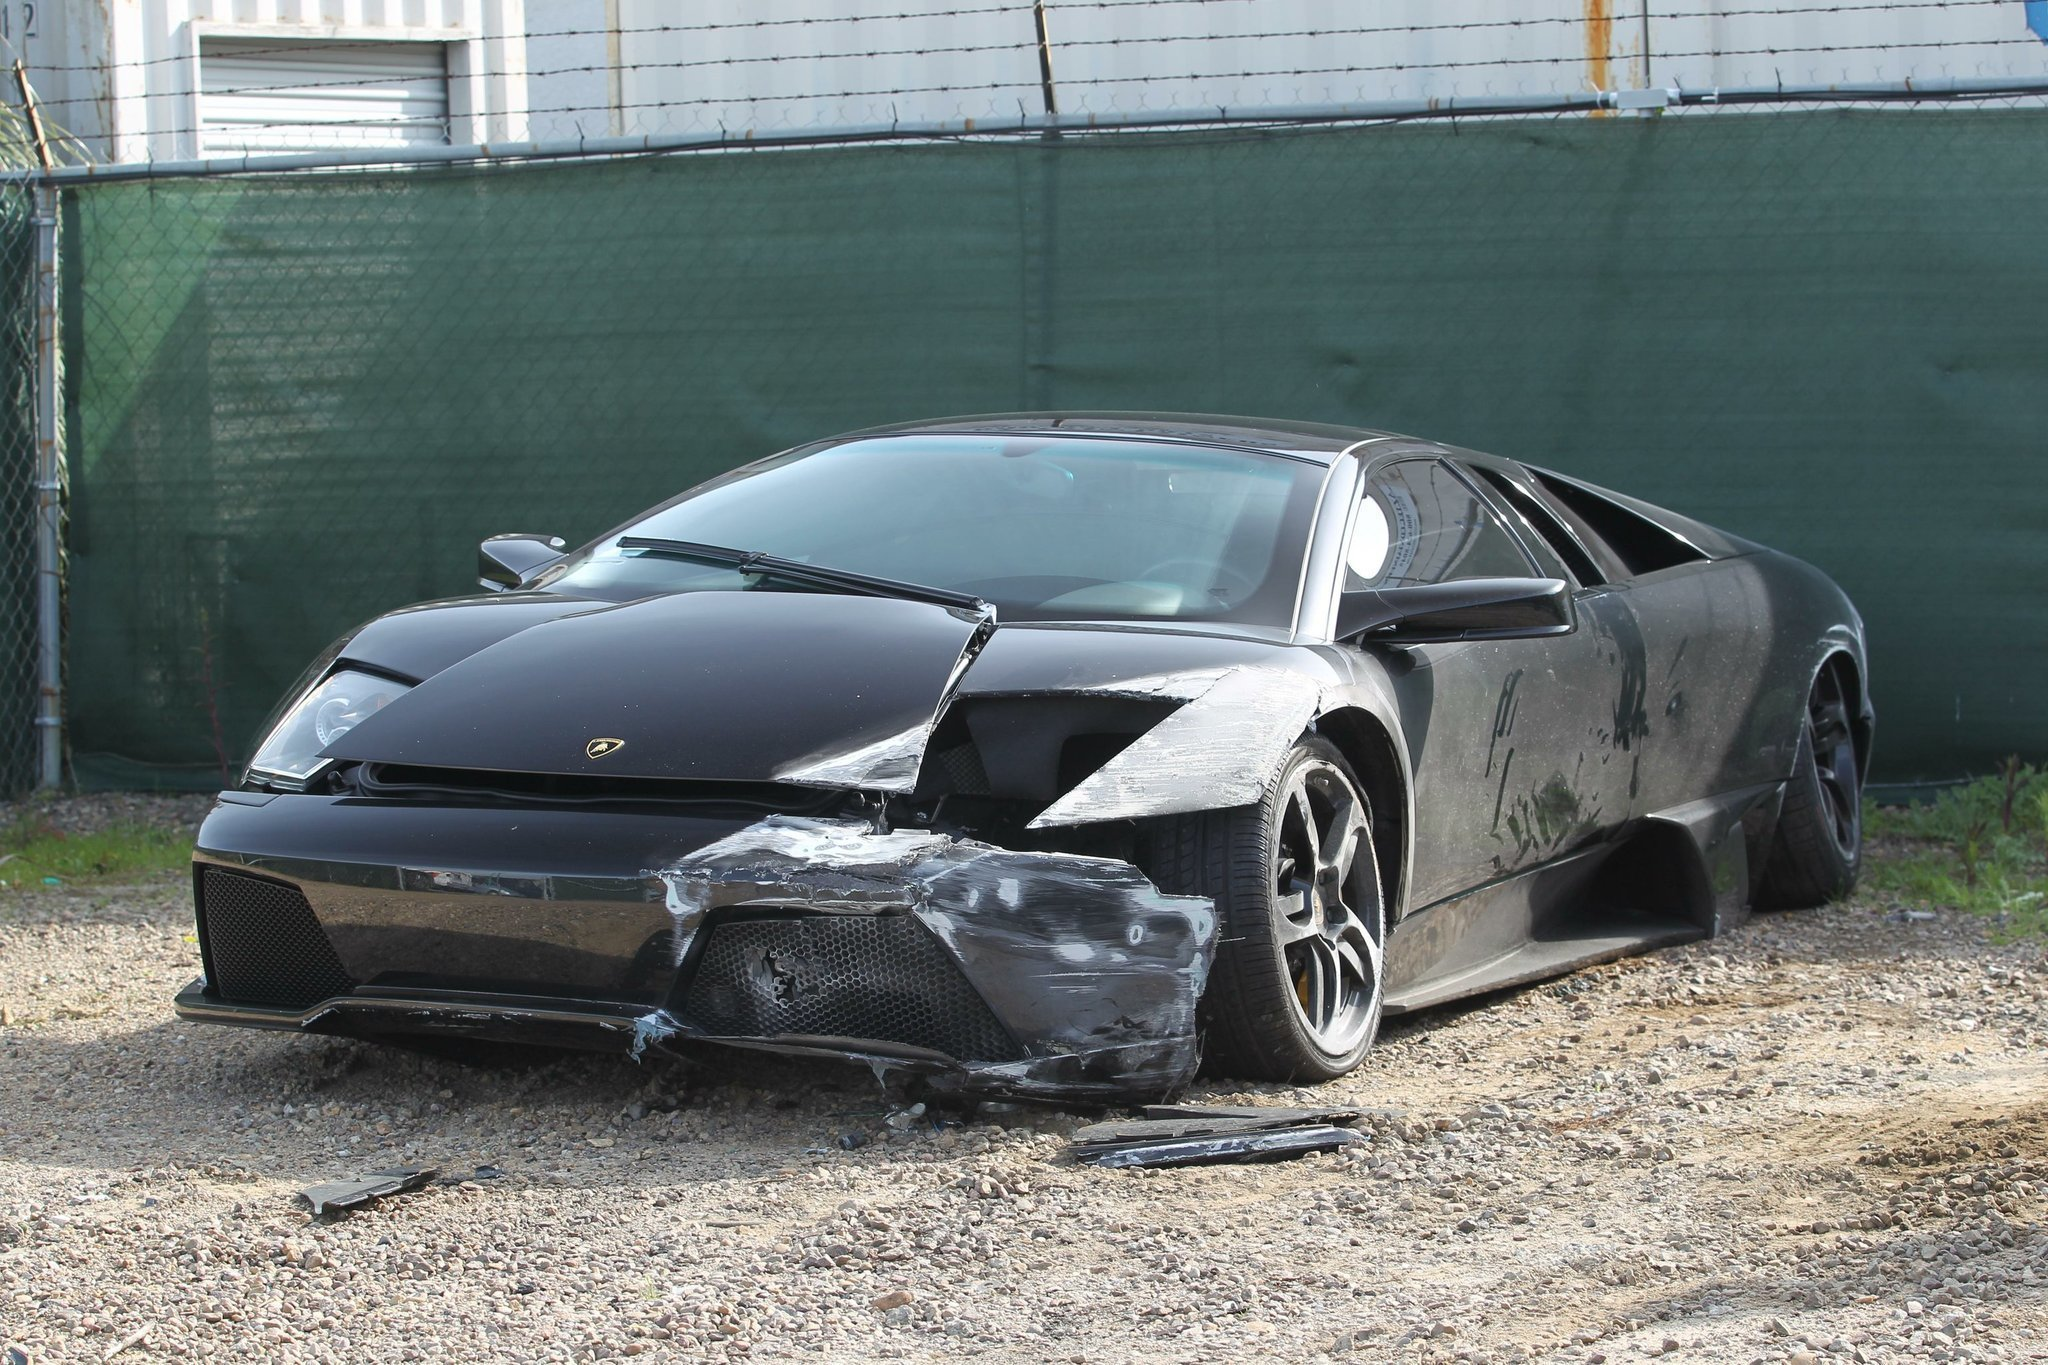 Crashed Lamborghini Still Not Claimed The San Diego Union Tribune